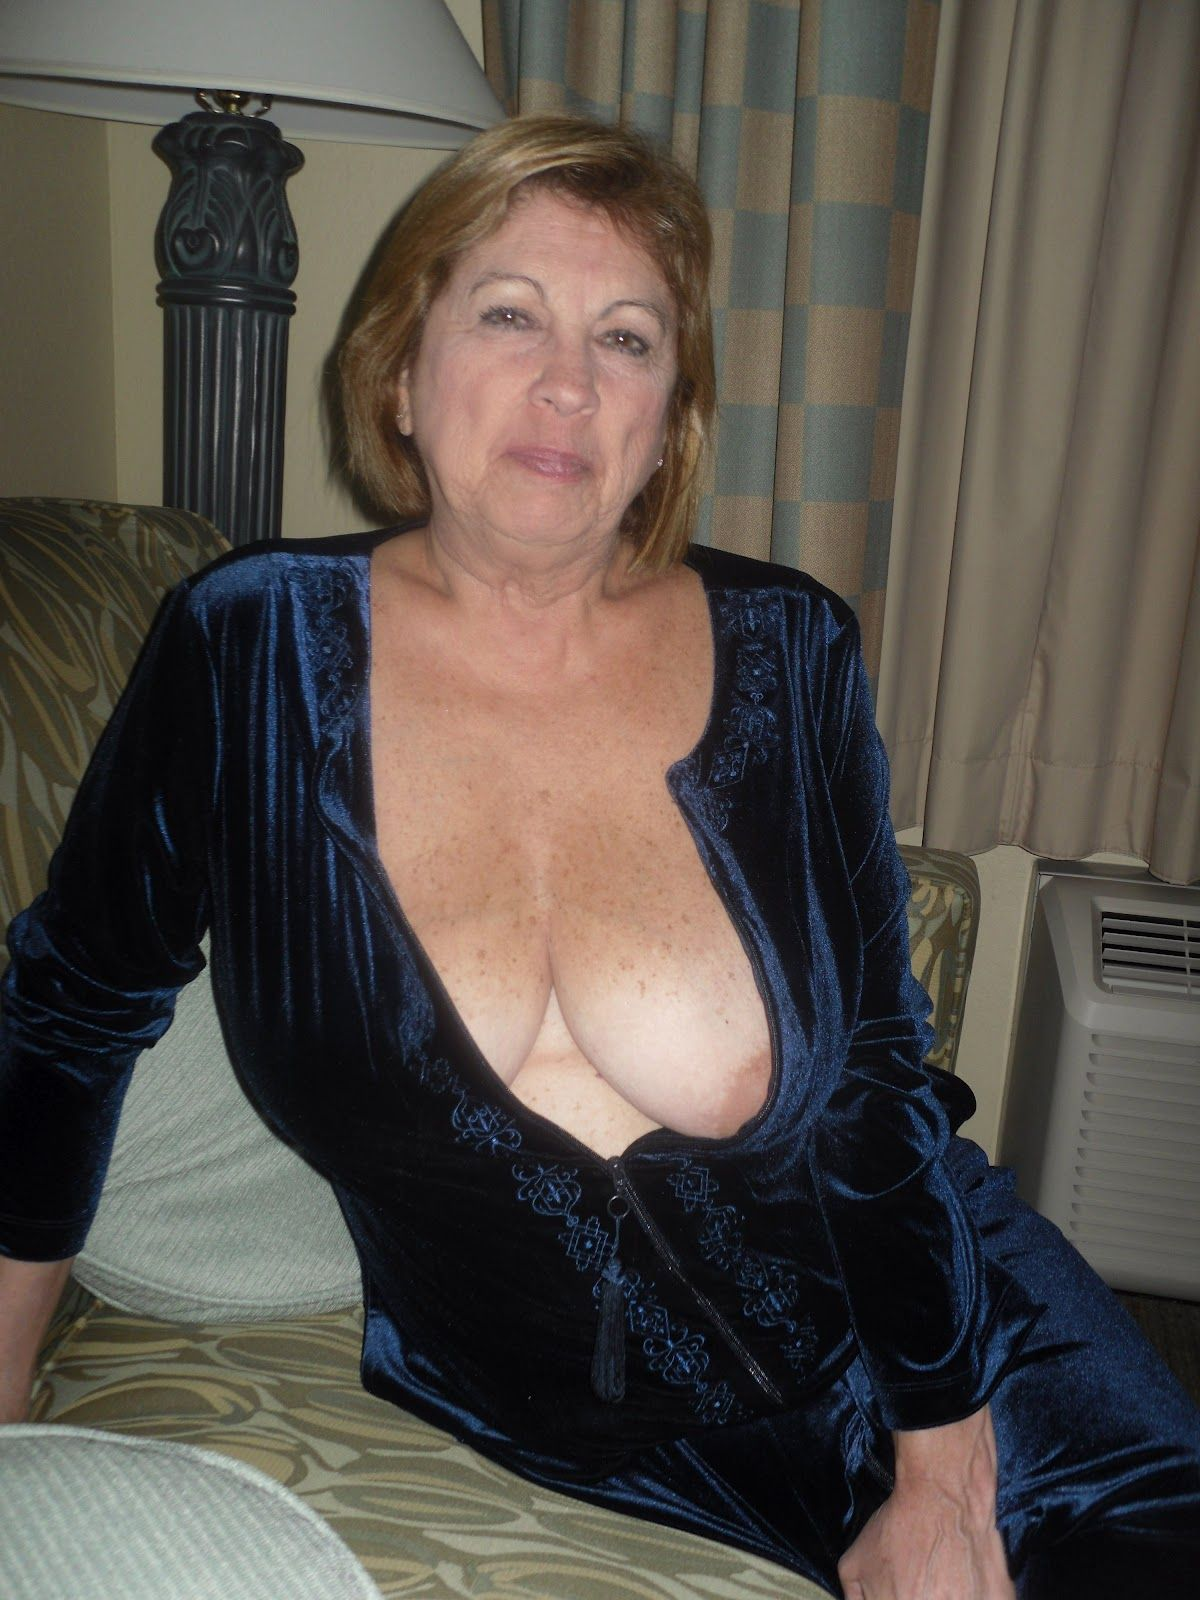 Big Breast Amateur Girls 16